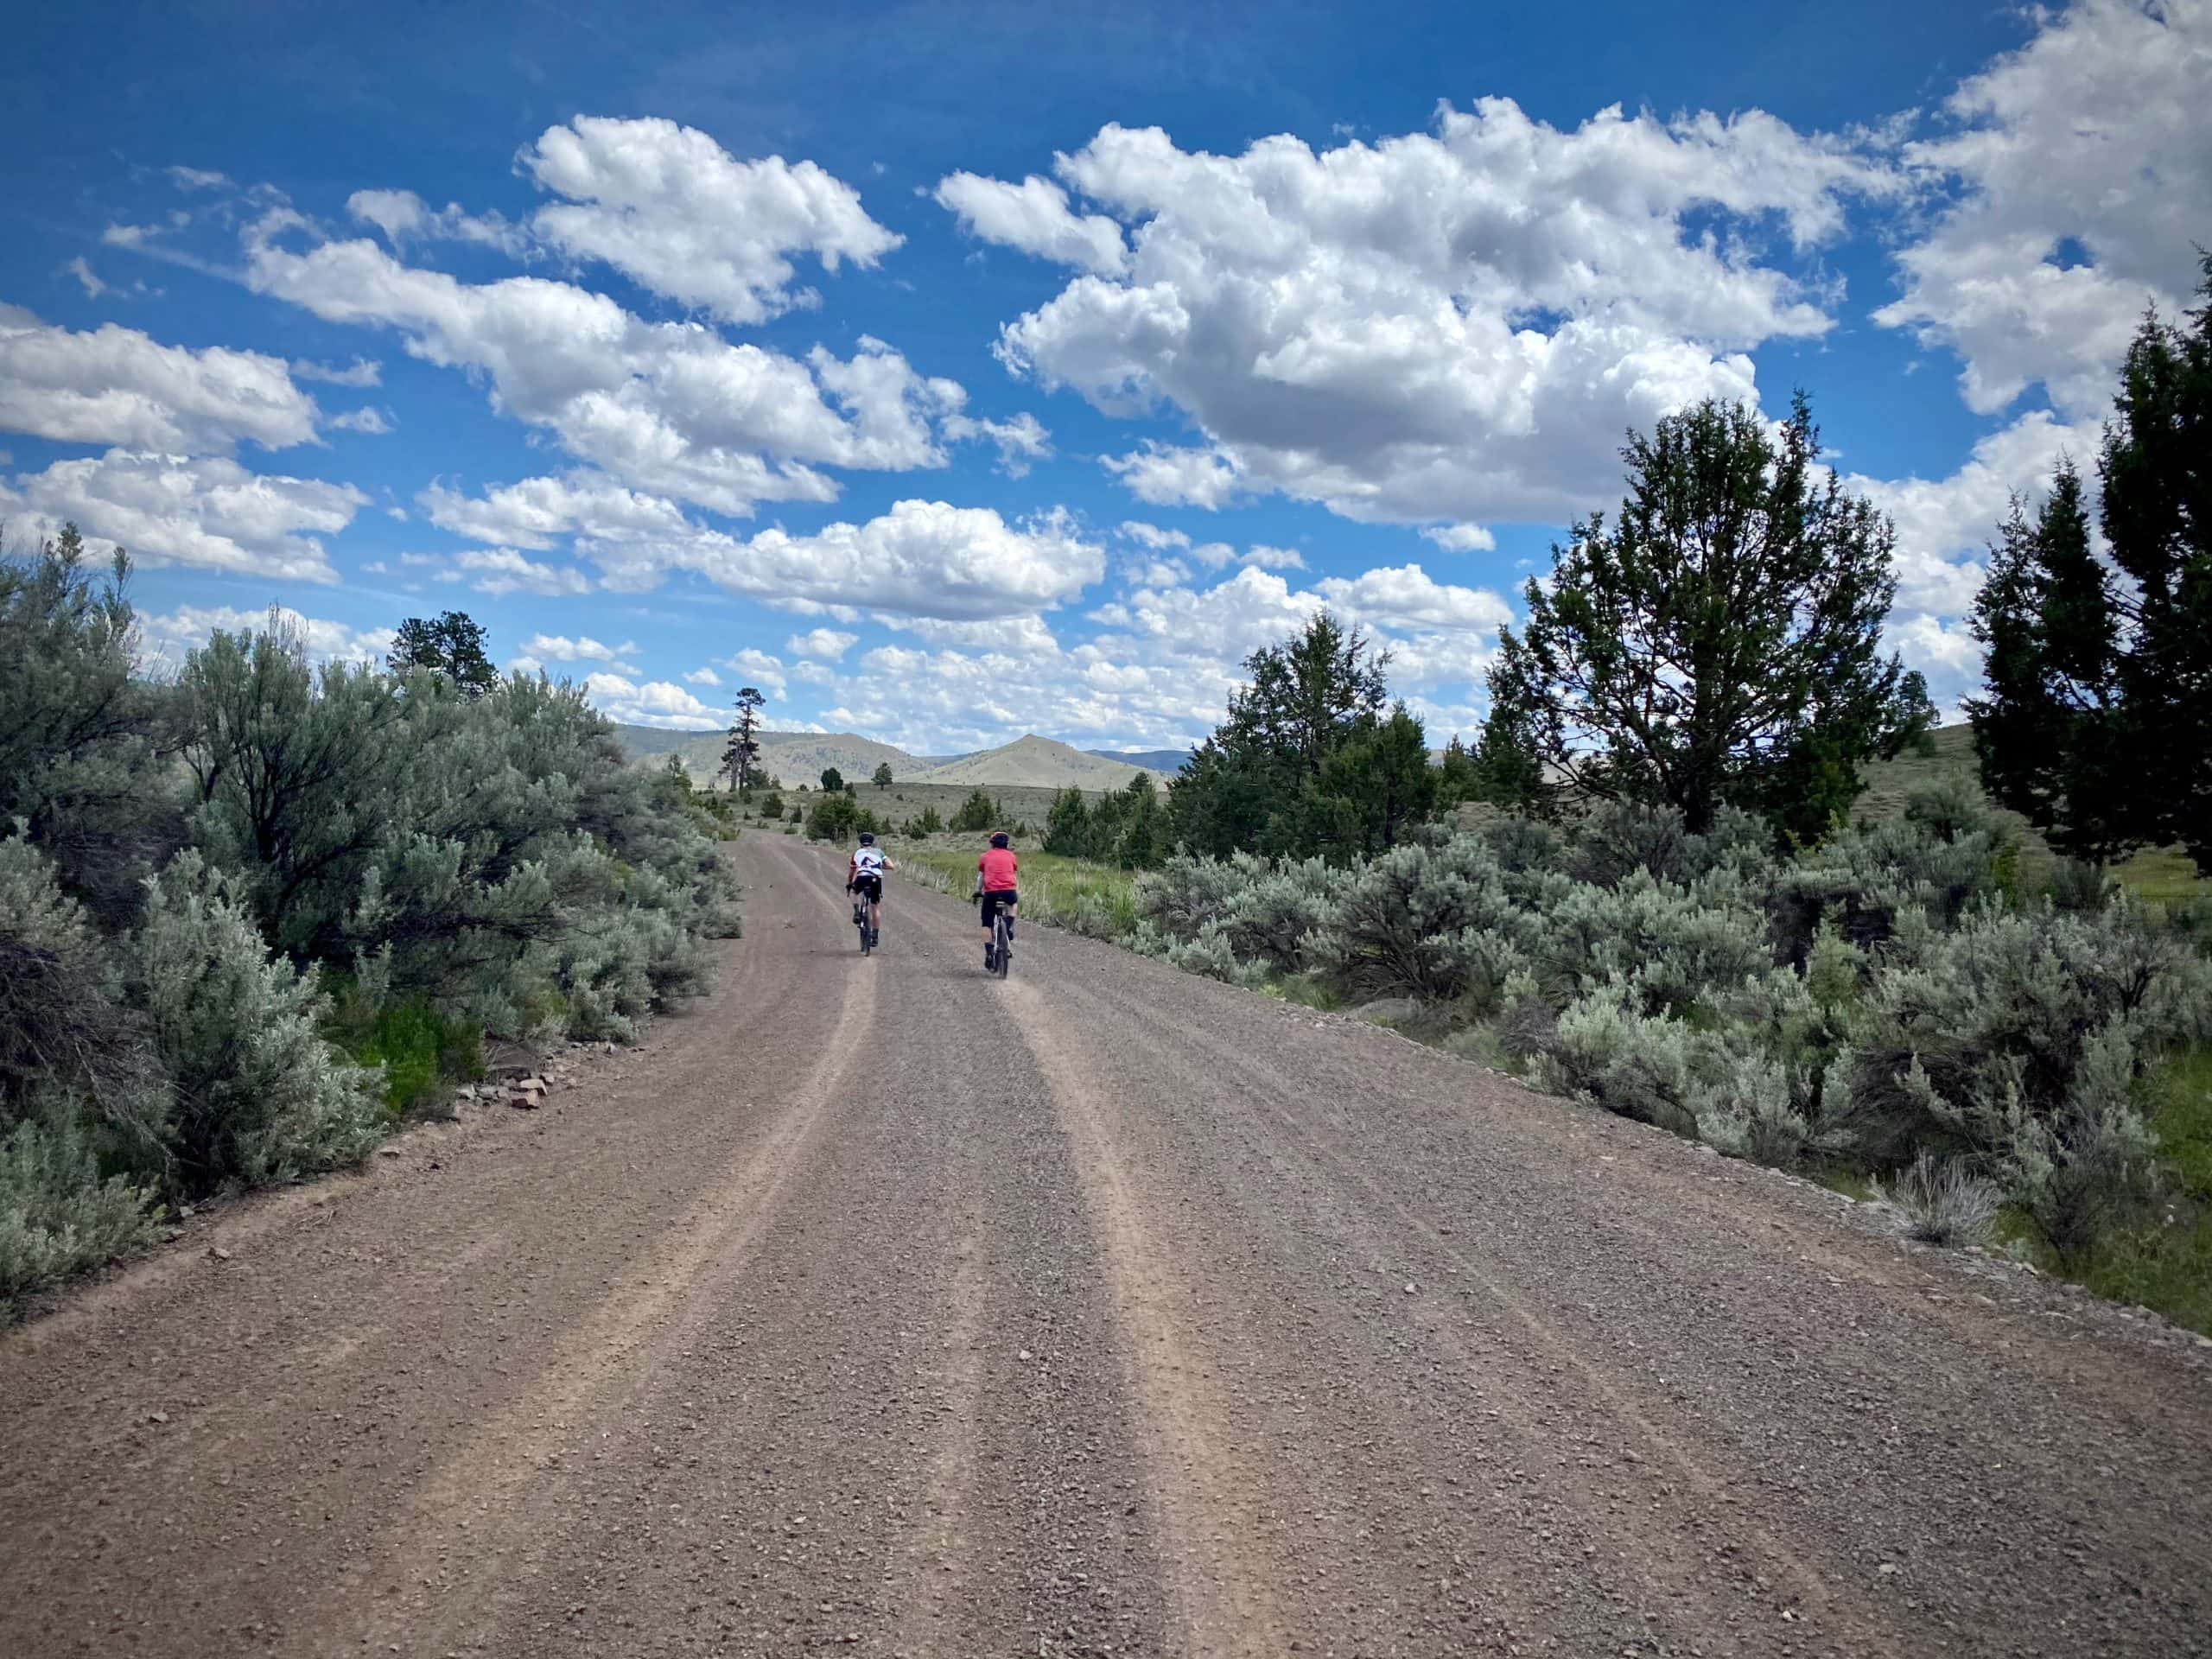 Gravel cyclists going fast on dirt road approaching Waterman Flat in Oregon.